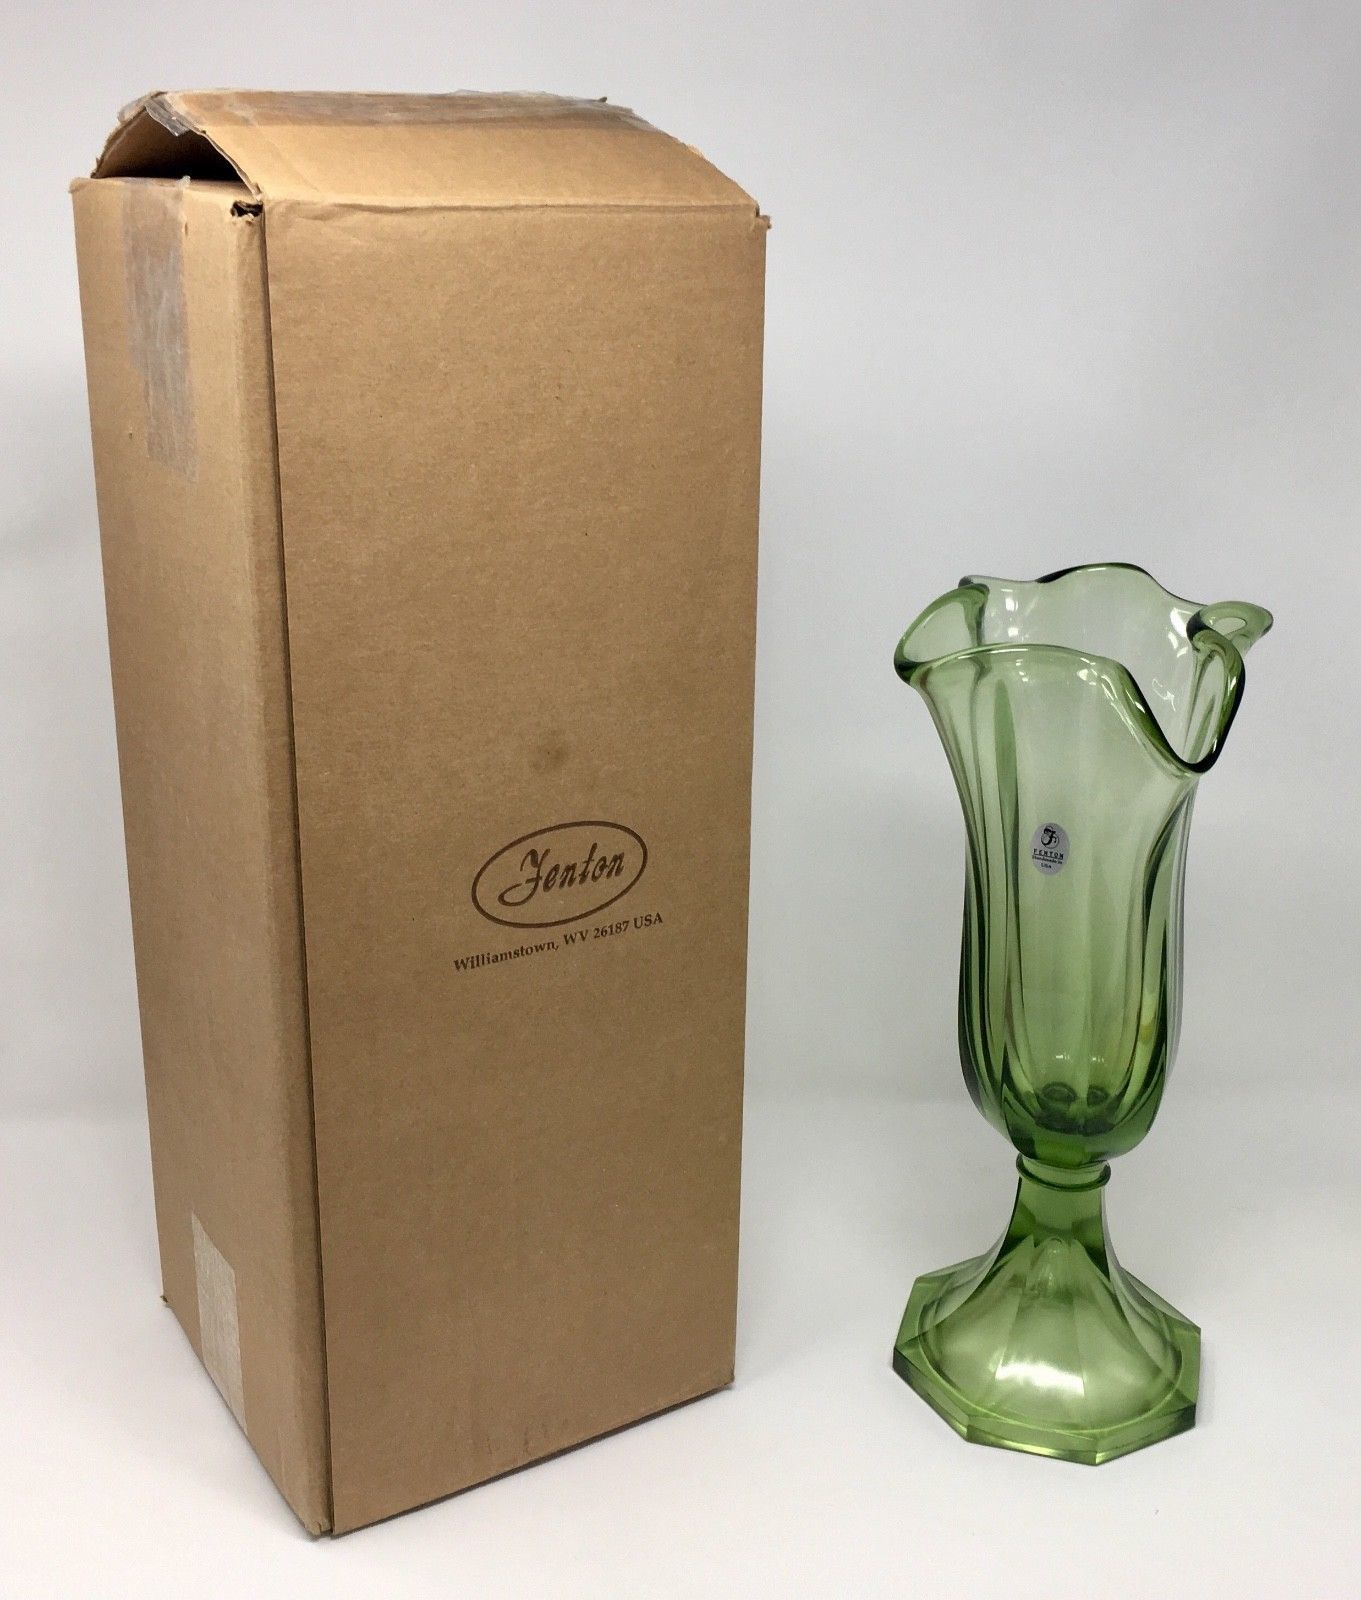 Primary image for Fenton Art Glass Fern Green Large Swing Vase - New With Box! #4353 ZL